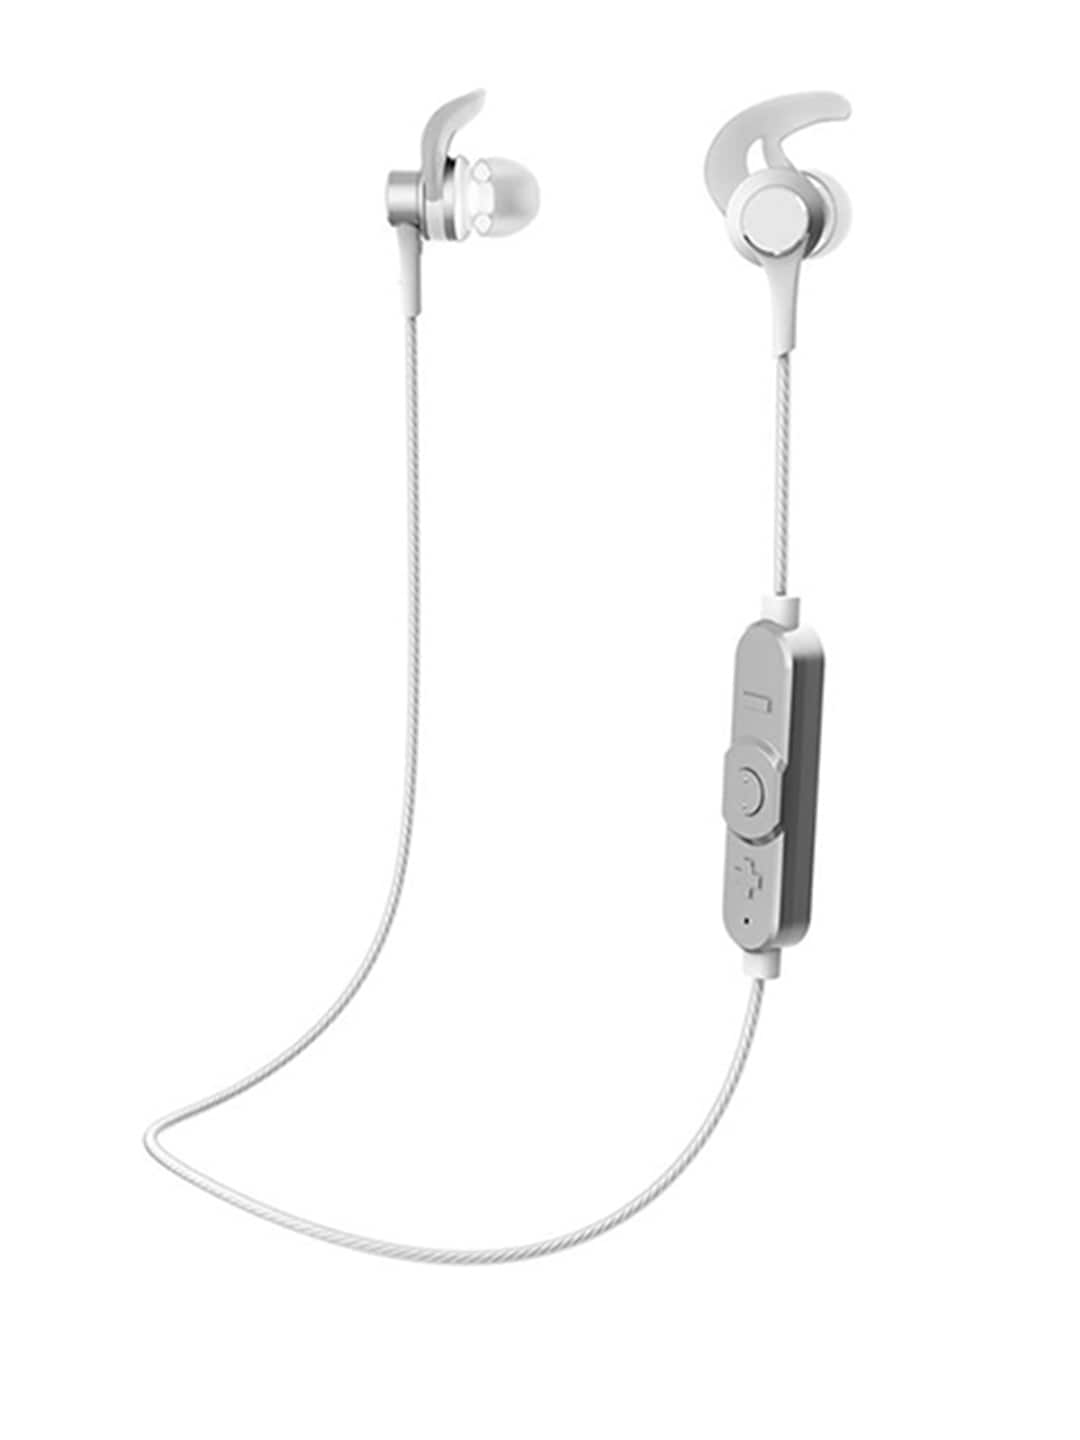 Buy Flipkart SmartBuy Silver-Toned Wireless Bluetooth In-Ear Earphones with Mic At Best Price